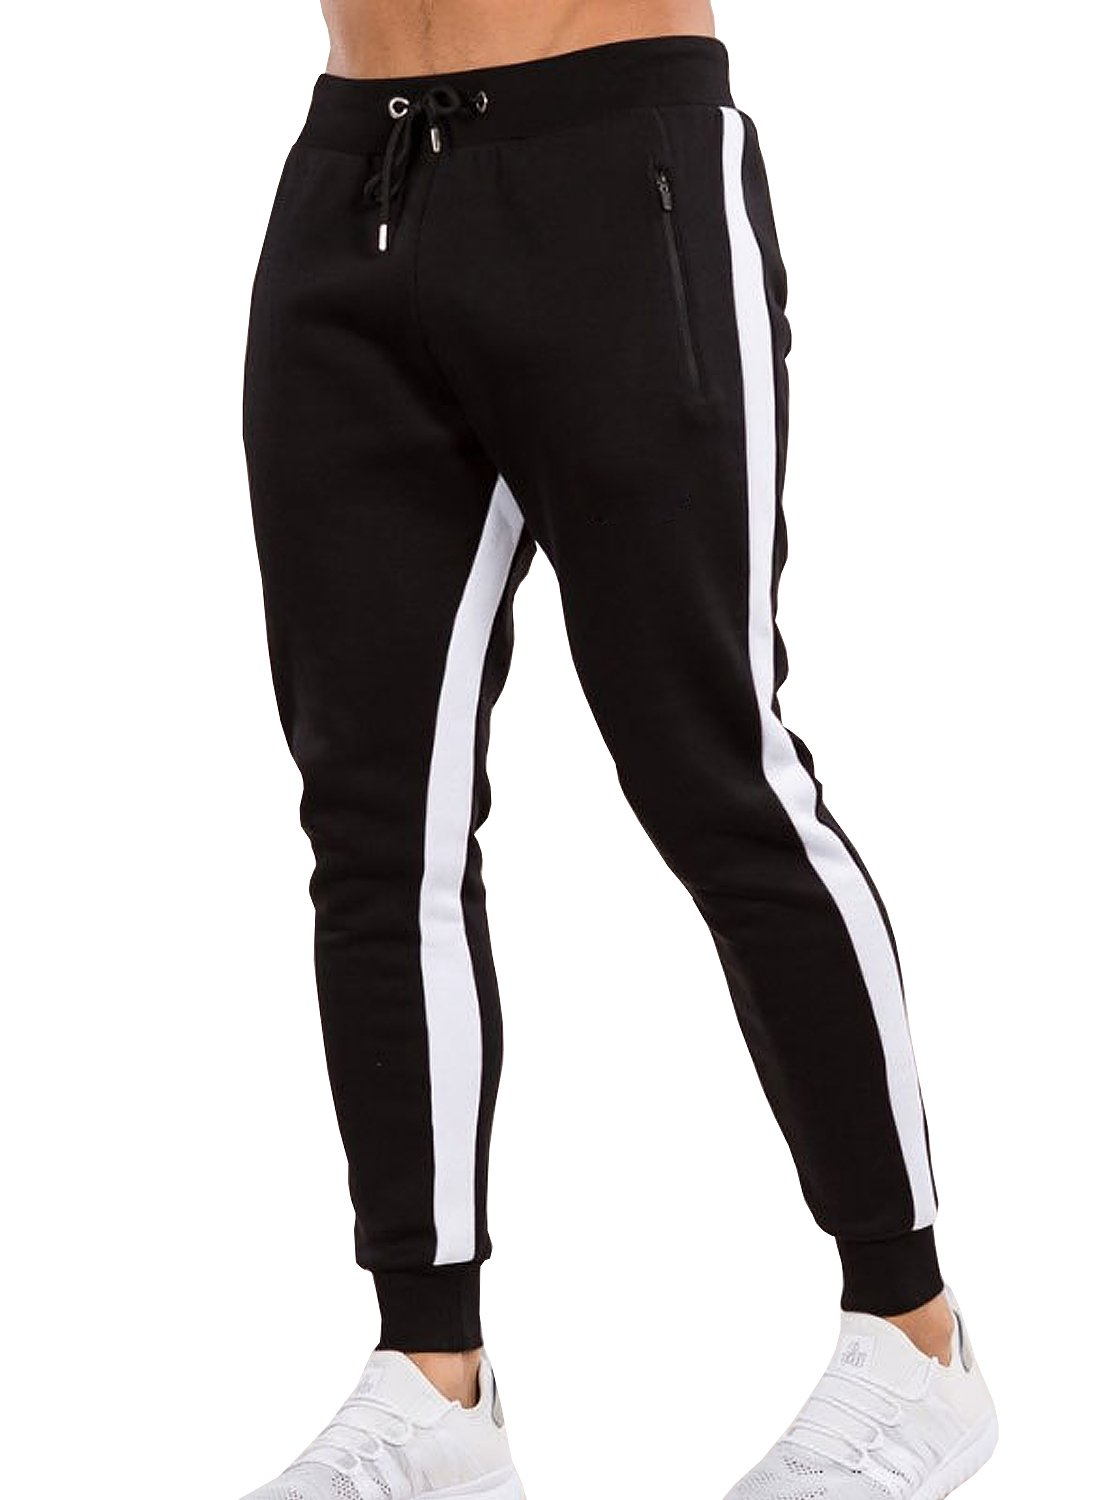 Ouber Men's Gym Jogger Pants Slim Fit Workout Running Sweatpants with Zipper Pockets (L,Black)